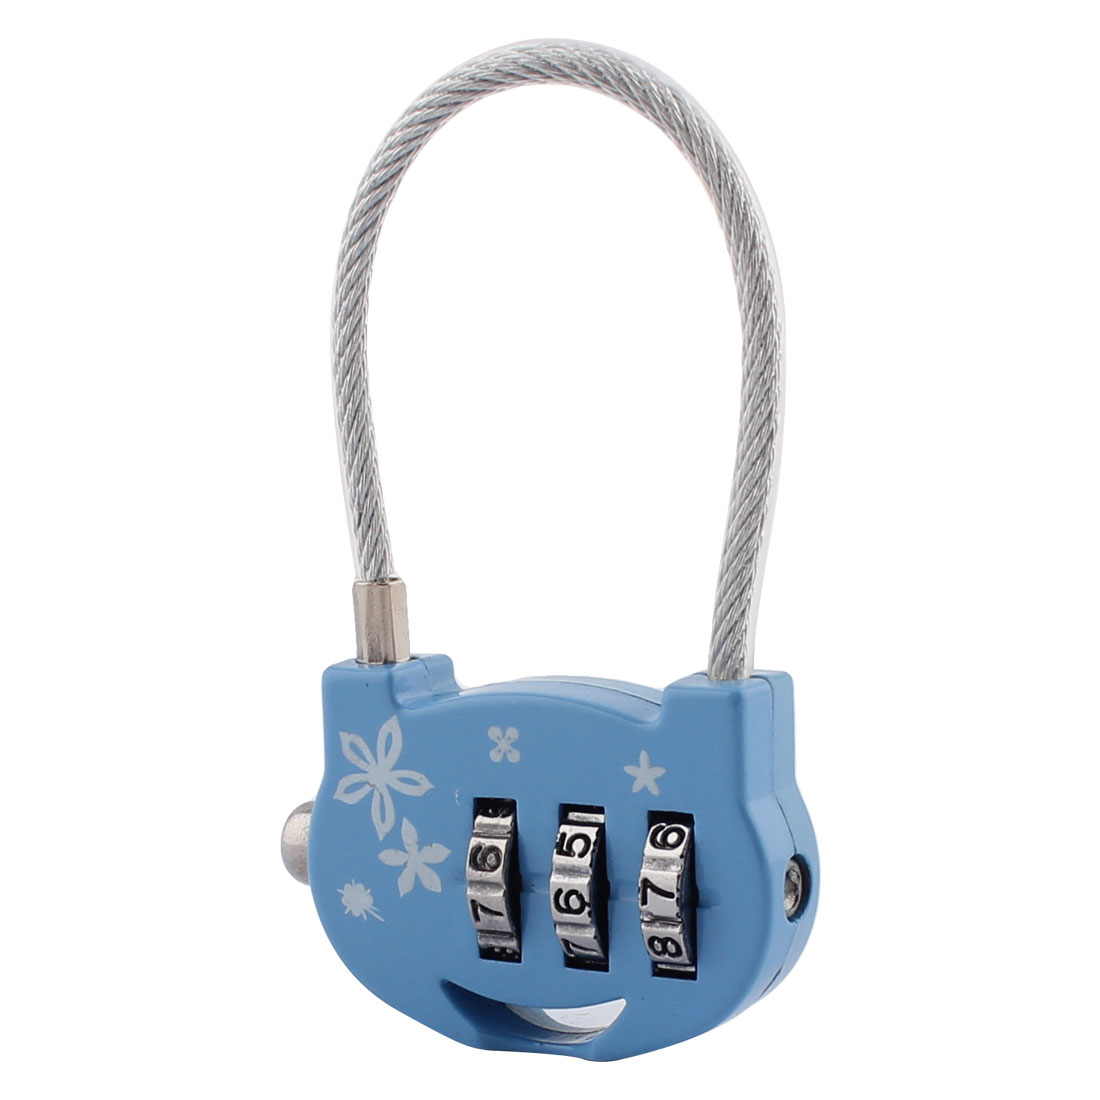 Suitcase Luggage Metal 3 Dial Digit Code Combination Password Lock Padlock Blue